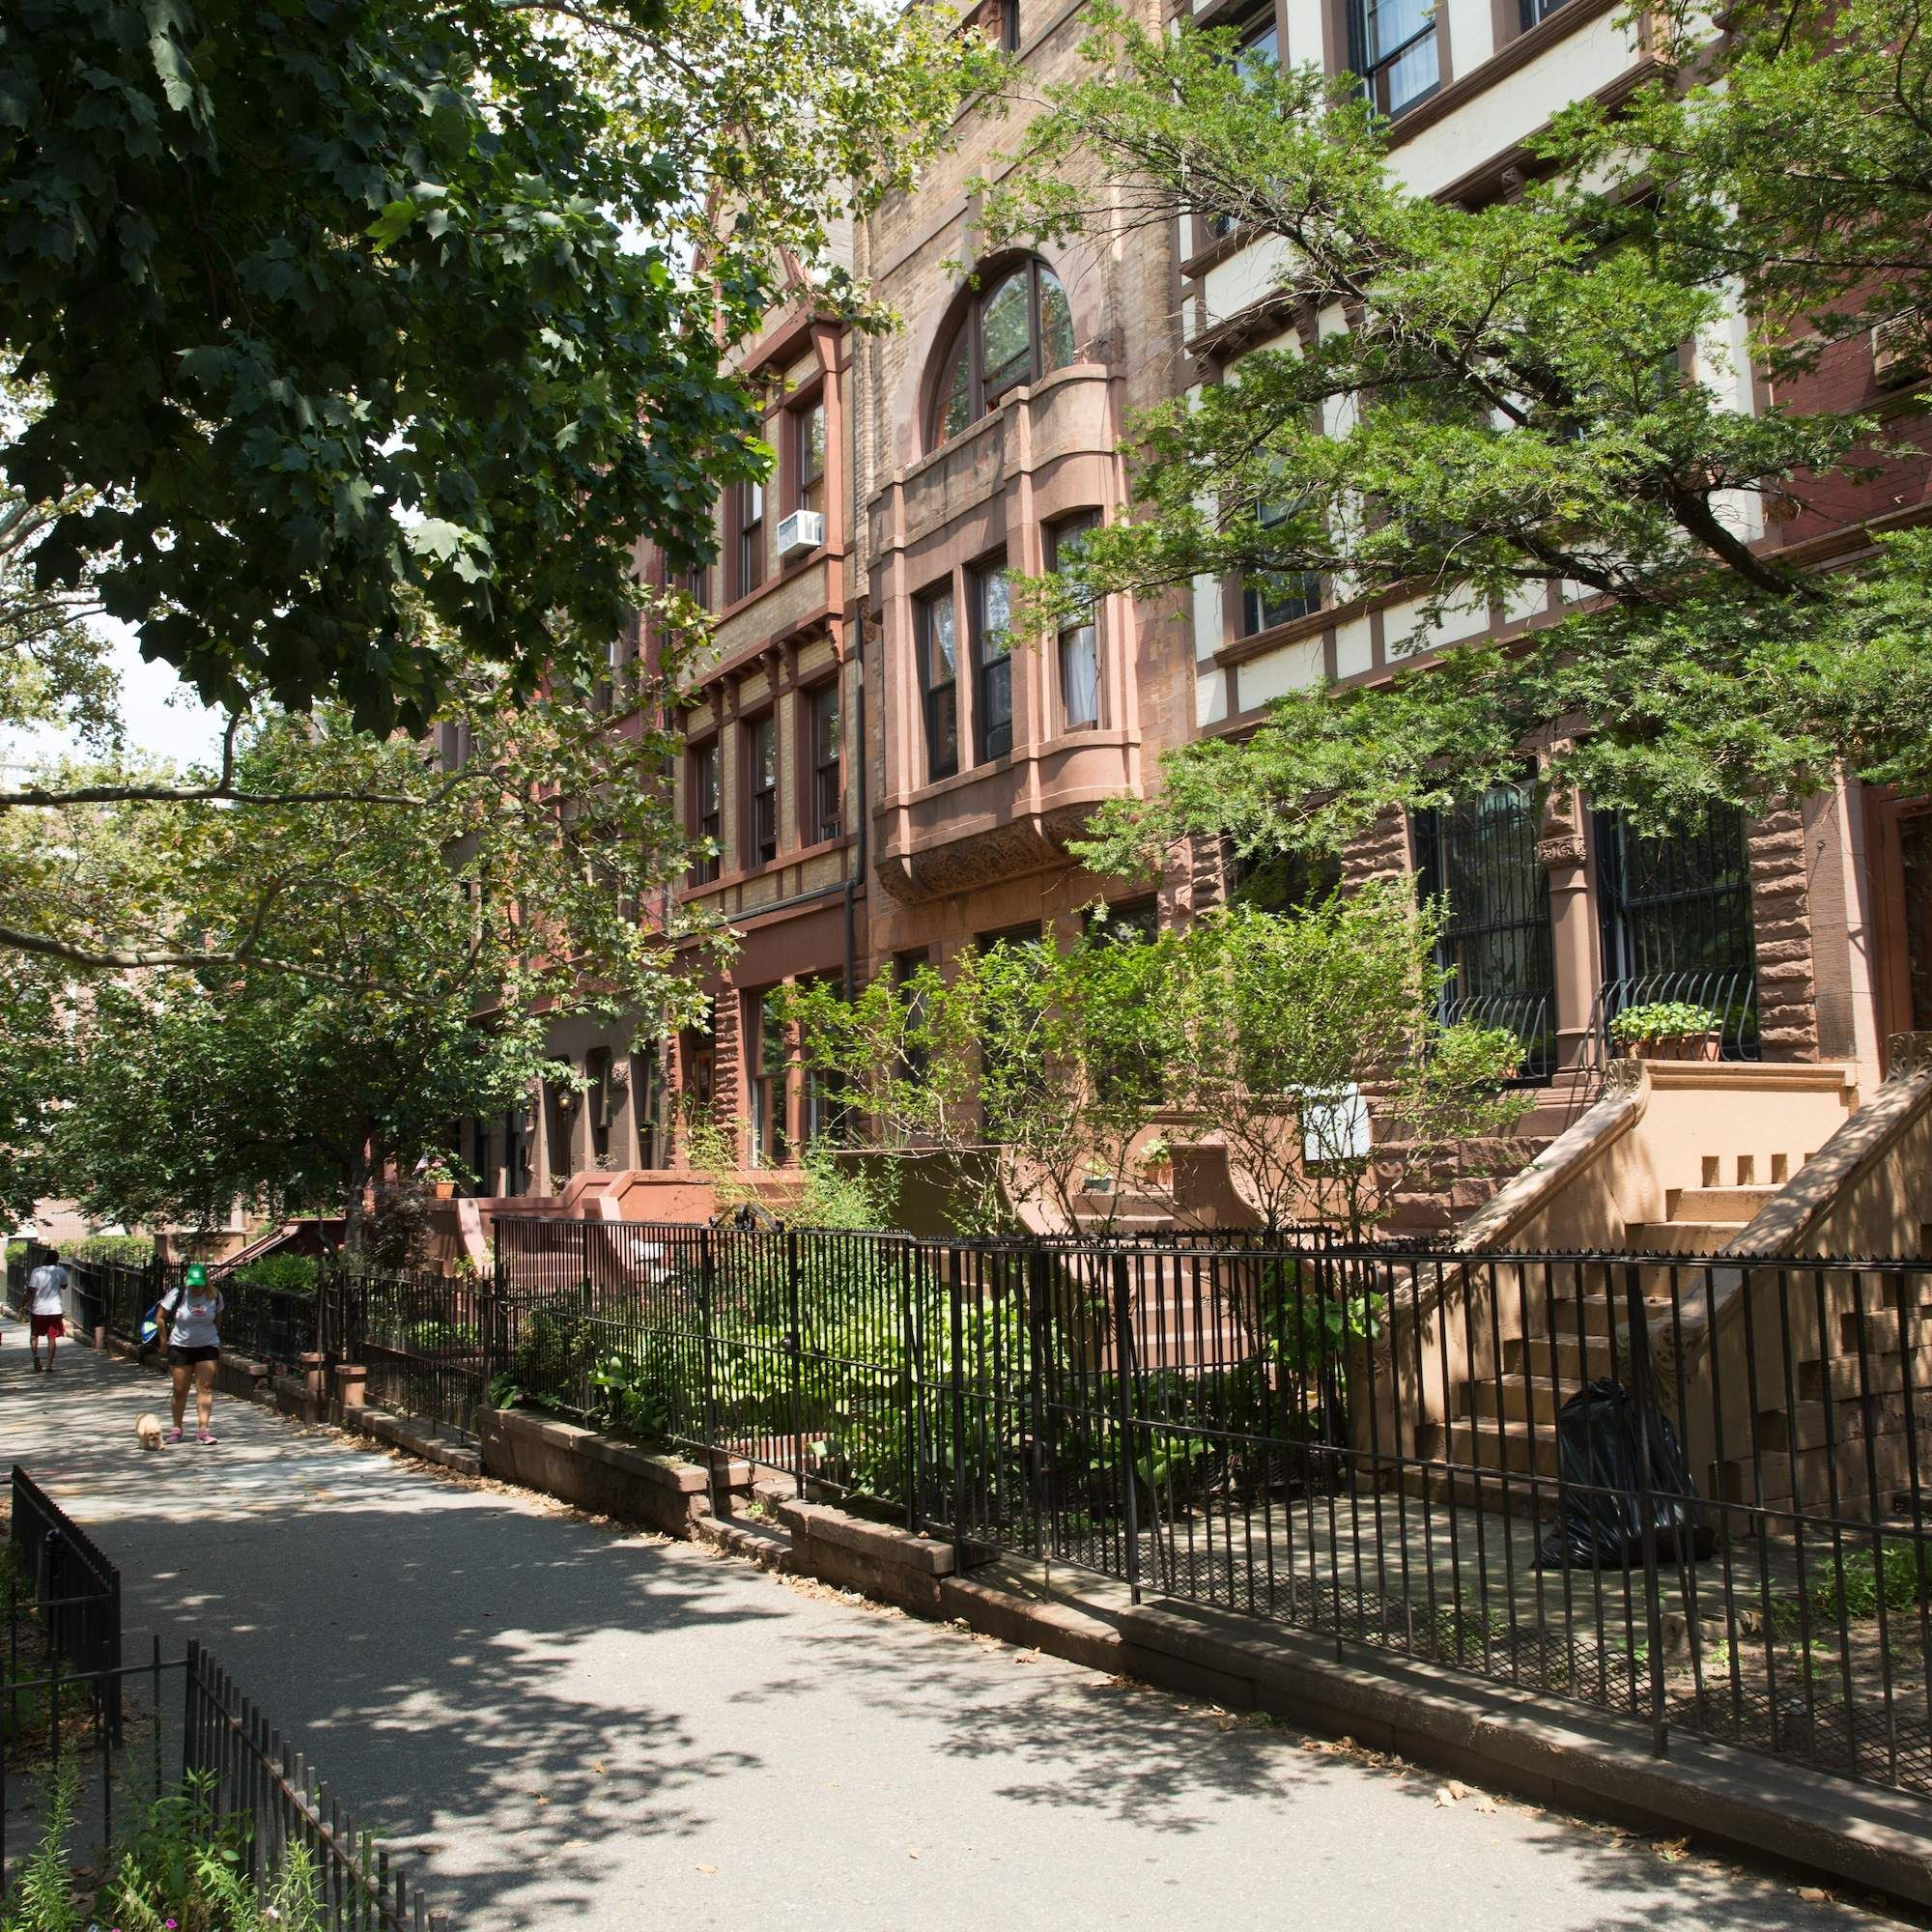 Rent Apartments In Nyc: The Most Beautiful Streets In New York City